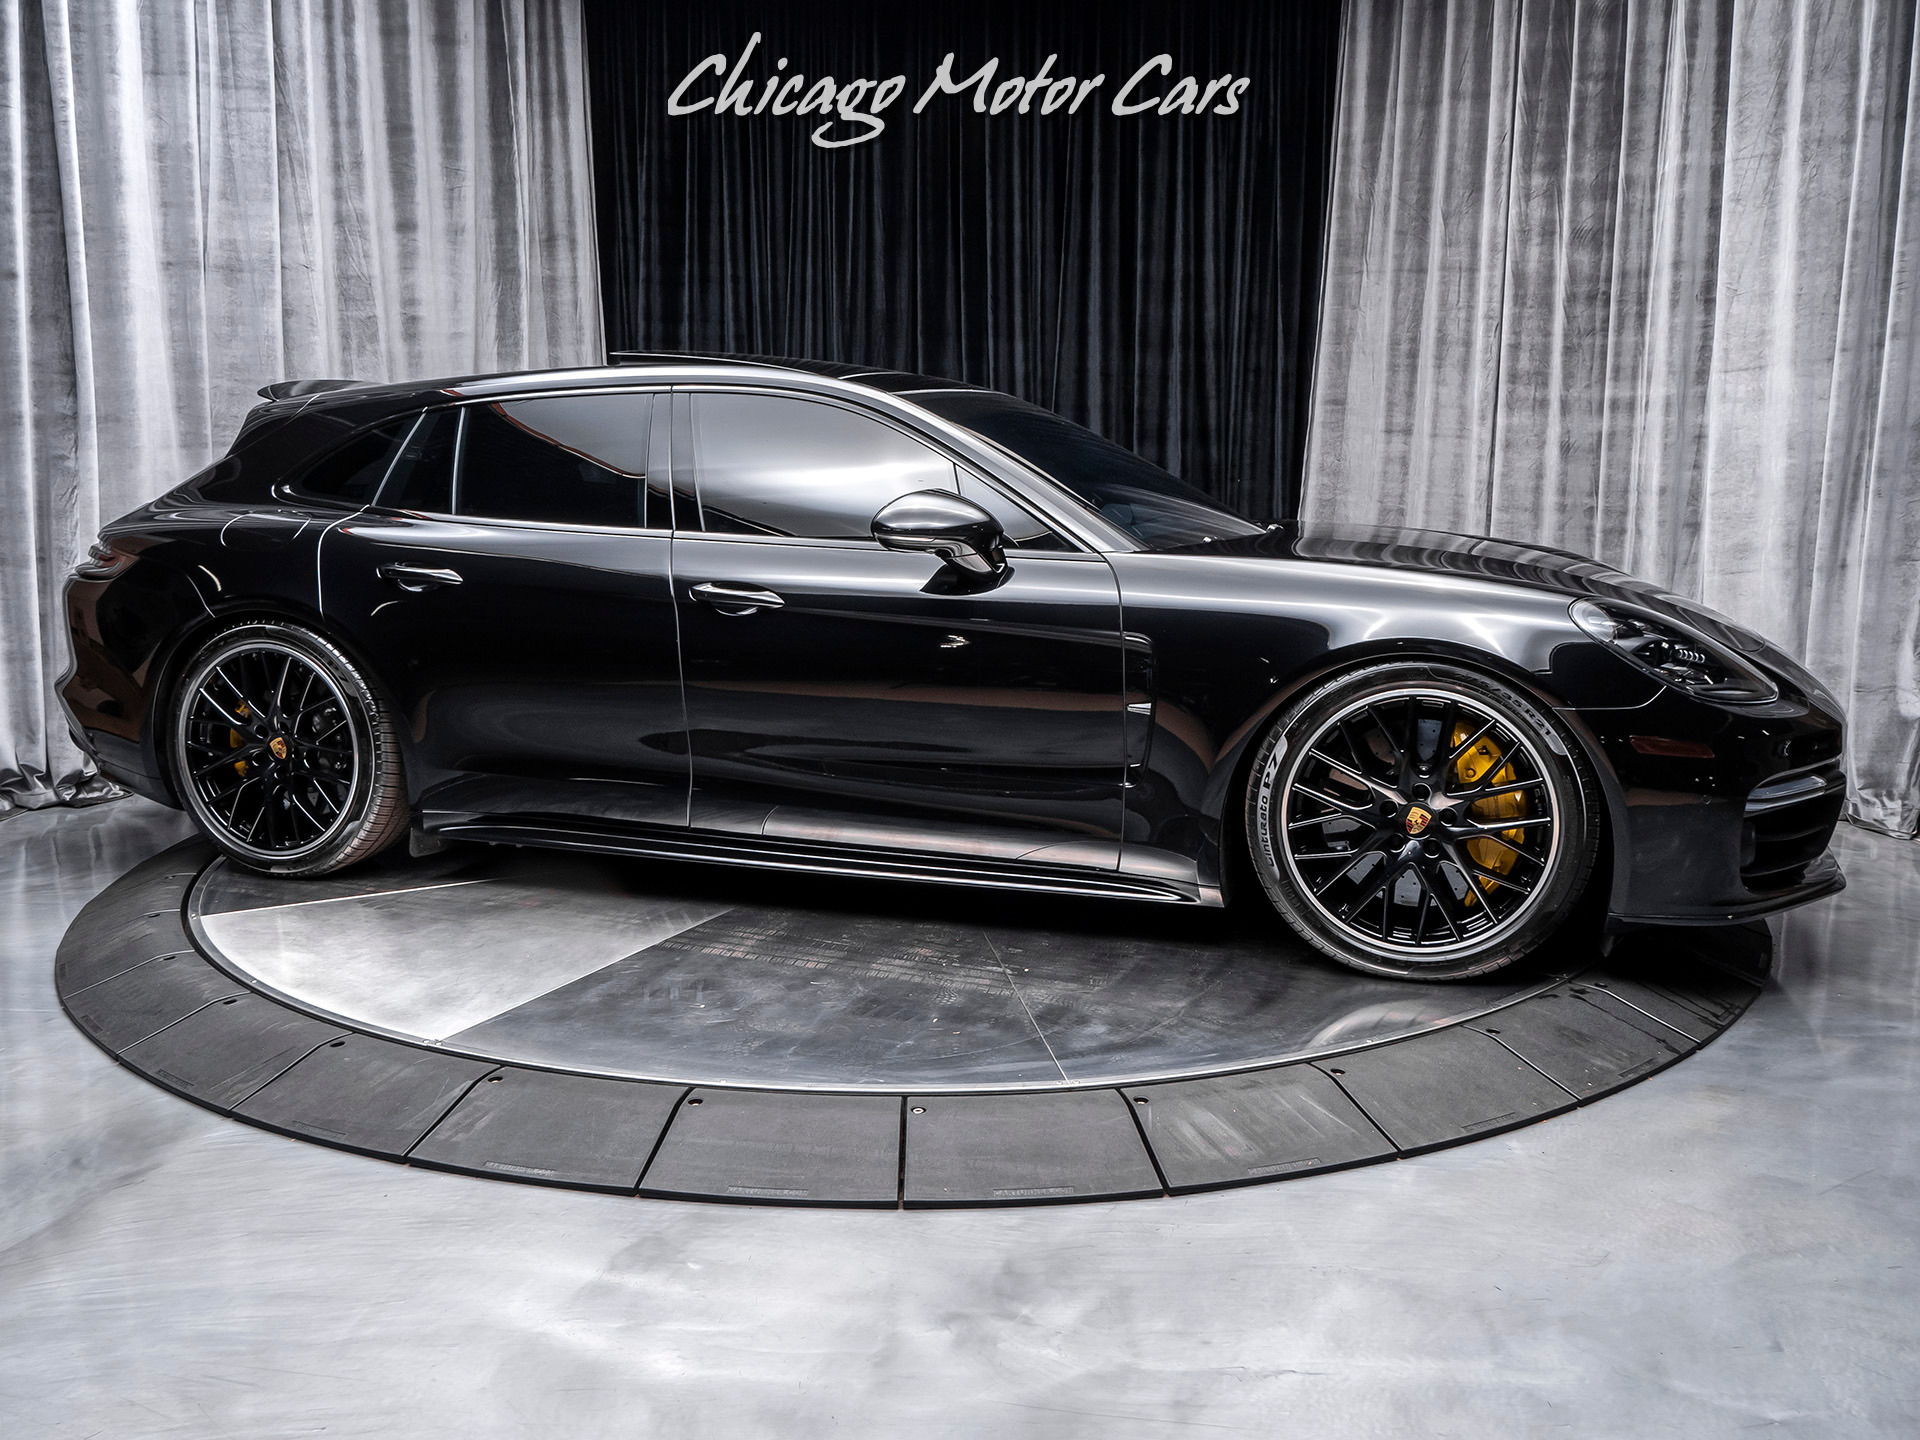 Used 2018 Porsche Panamera Turbo Sport Turismo Awd Wagon Msrp 226 280 For Sale Special Pricing Chicago Motor Cars Stock 15954